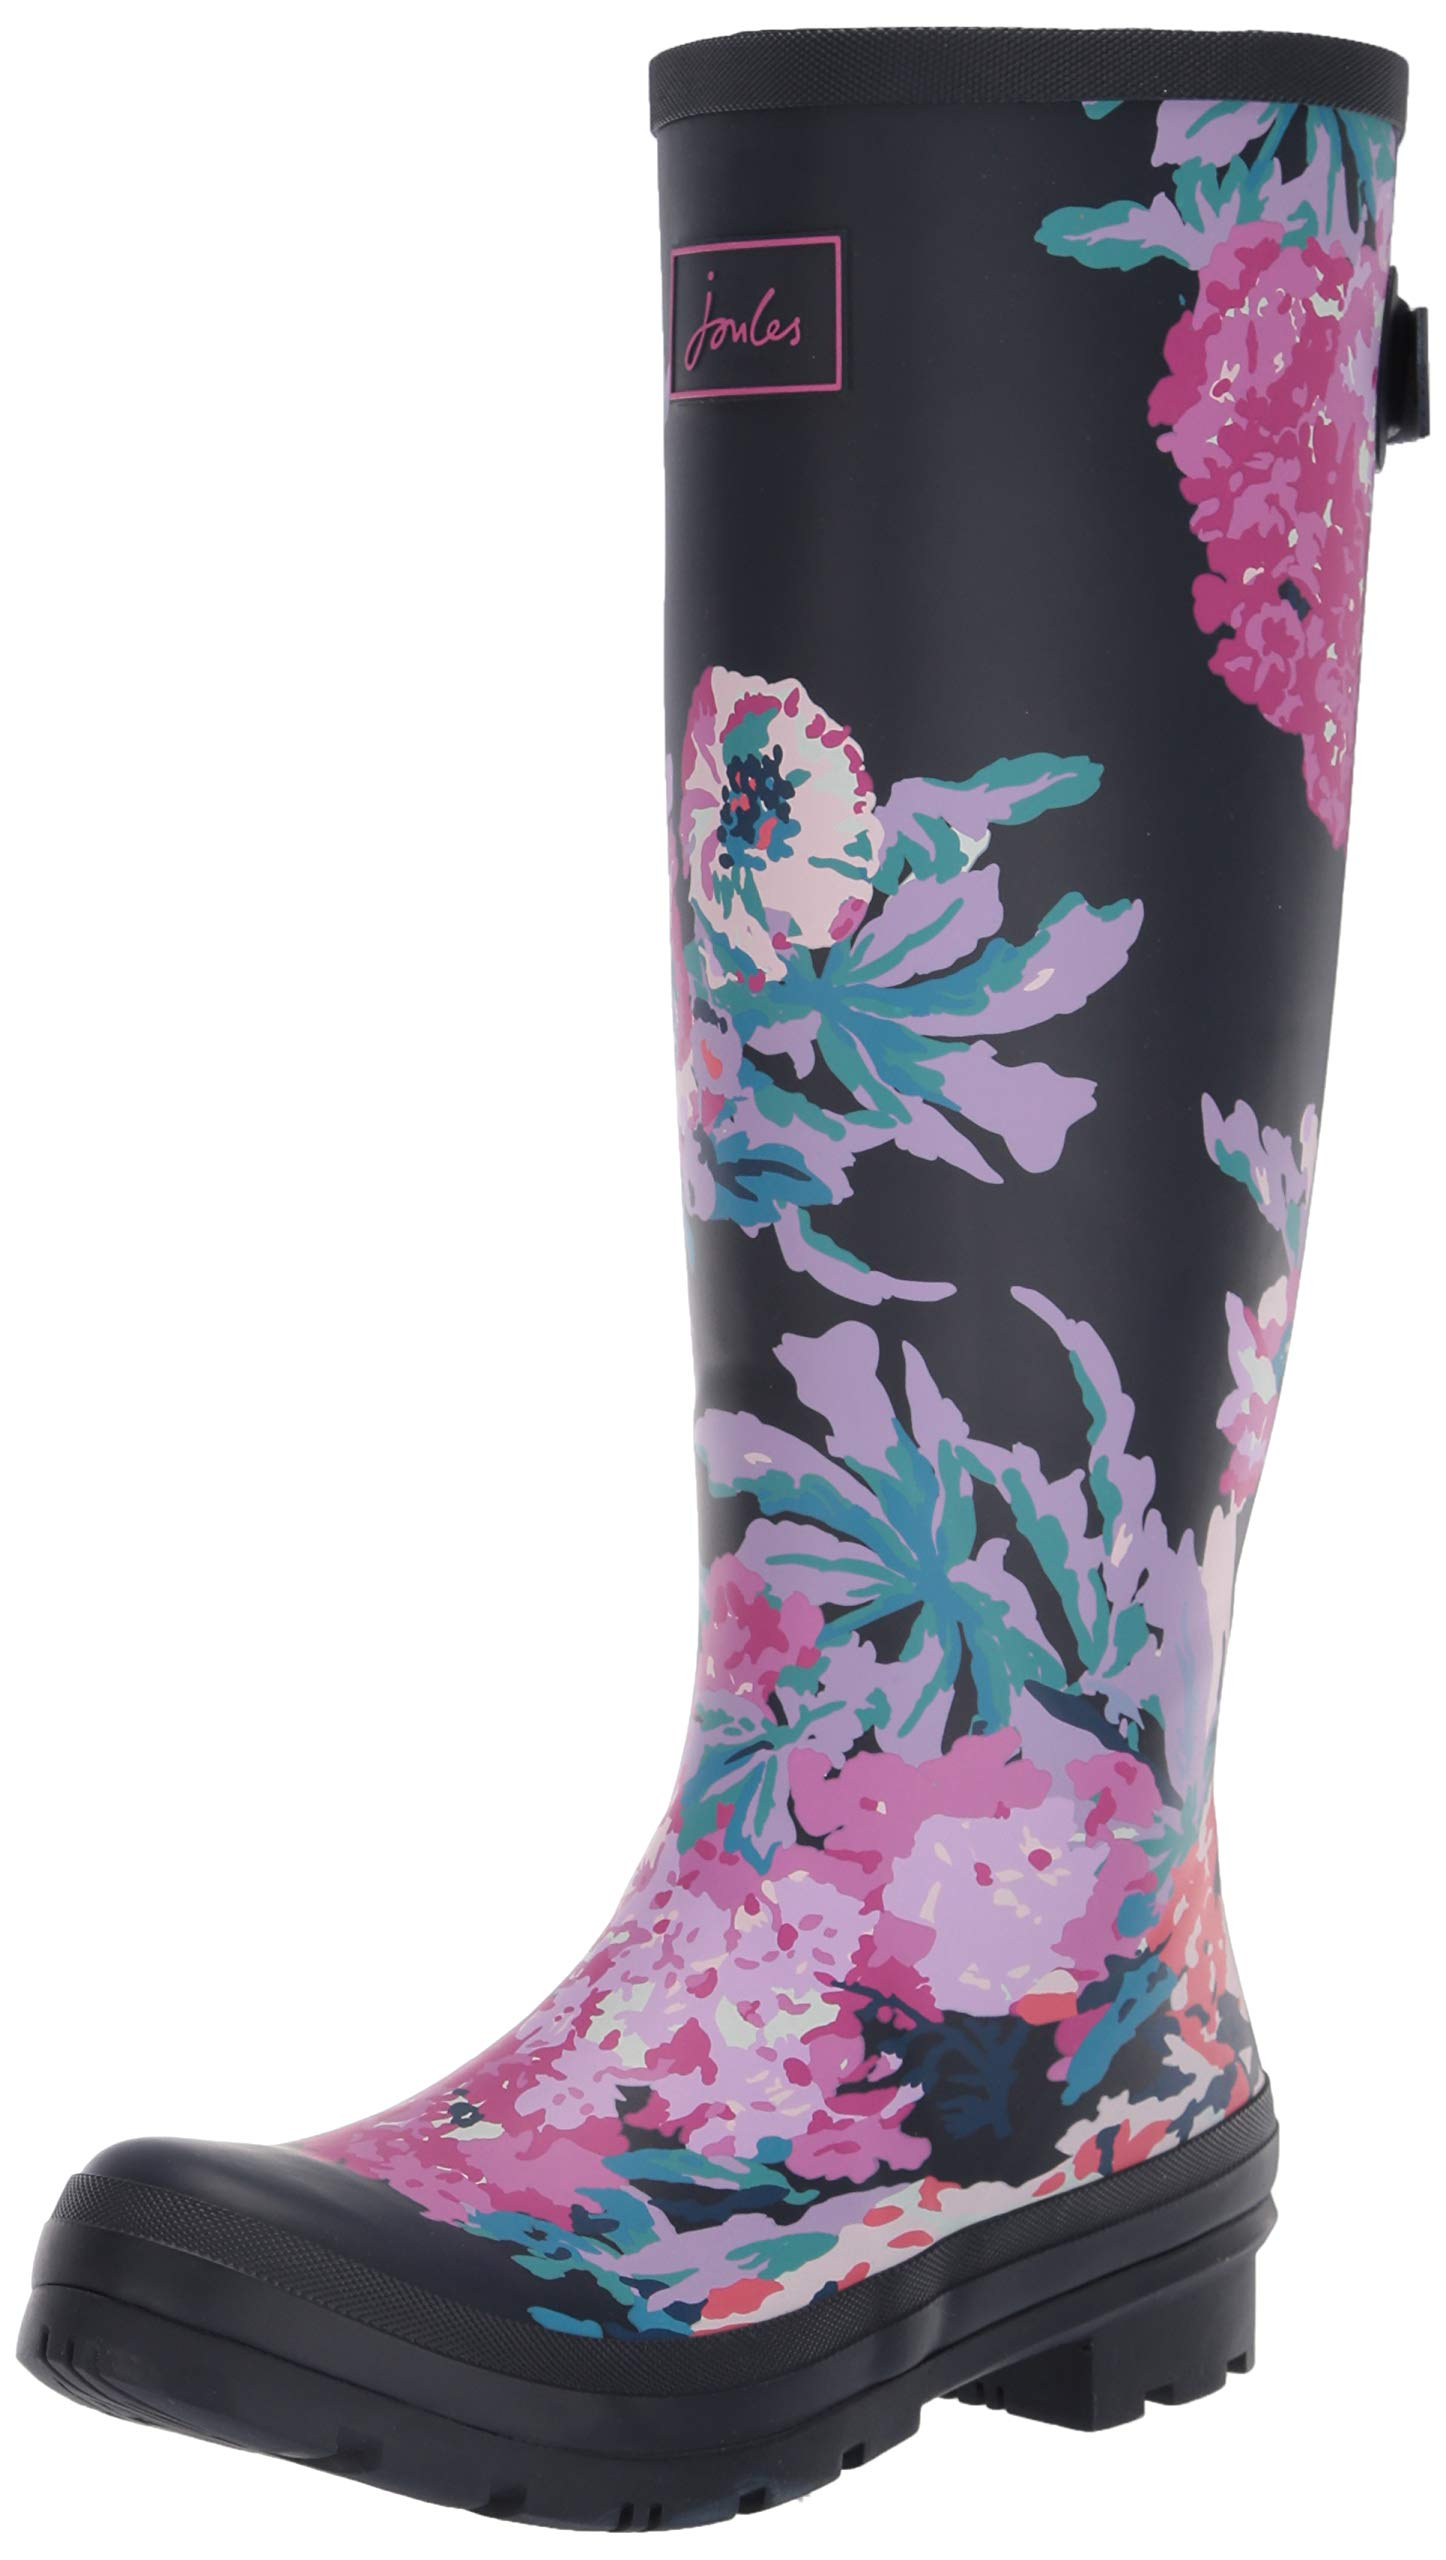 Joules Women's Welly Print Rain Boot, Navy All Over Floral, 9 Medium US